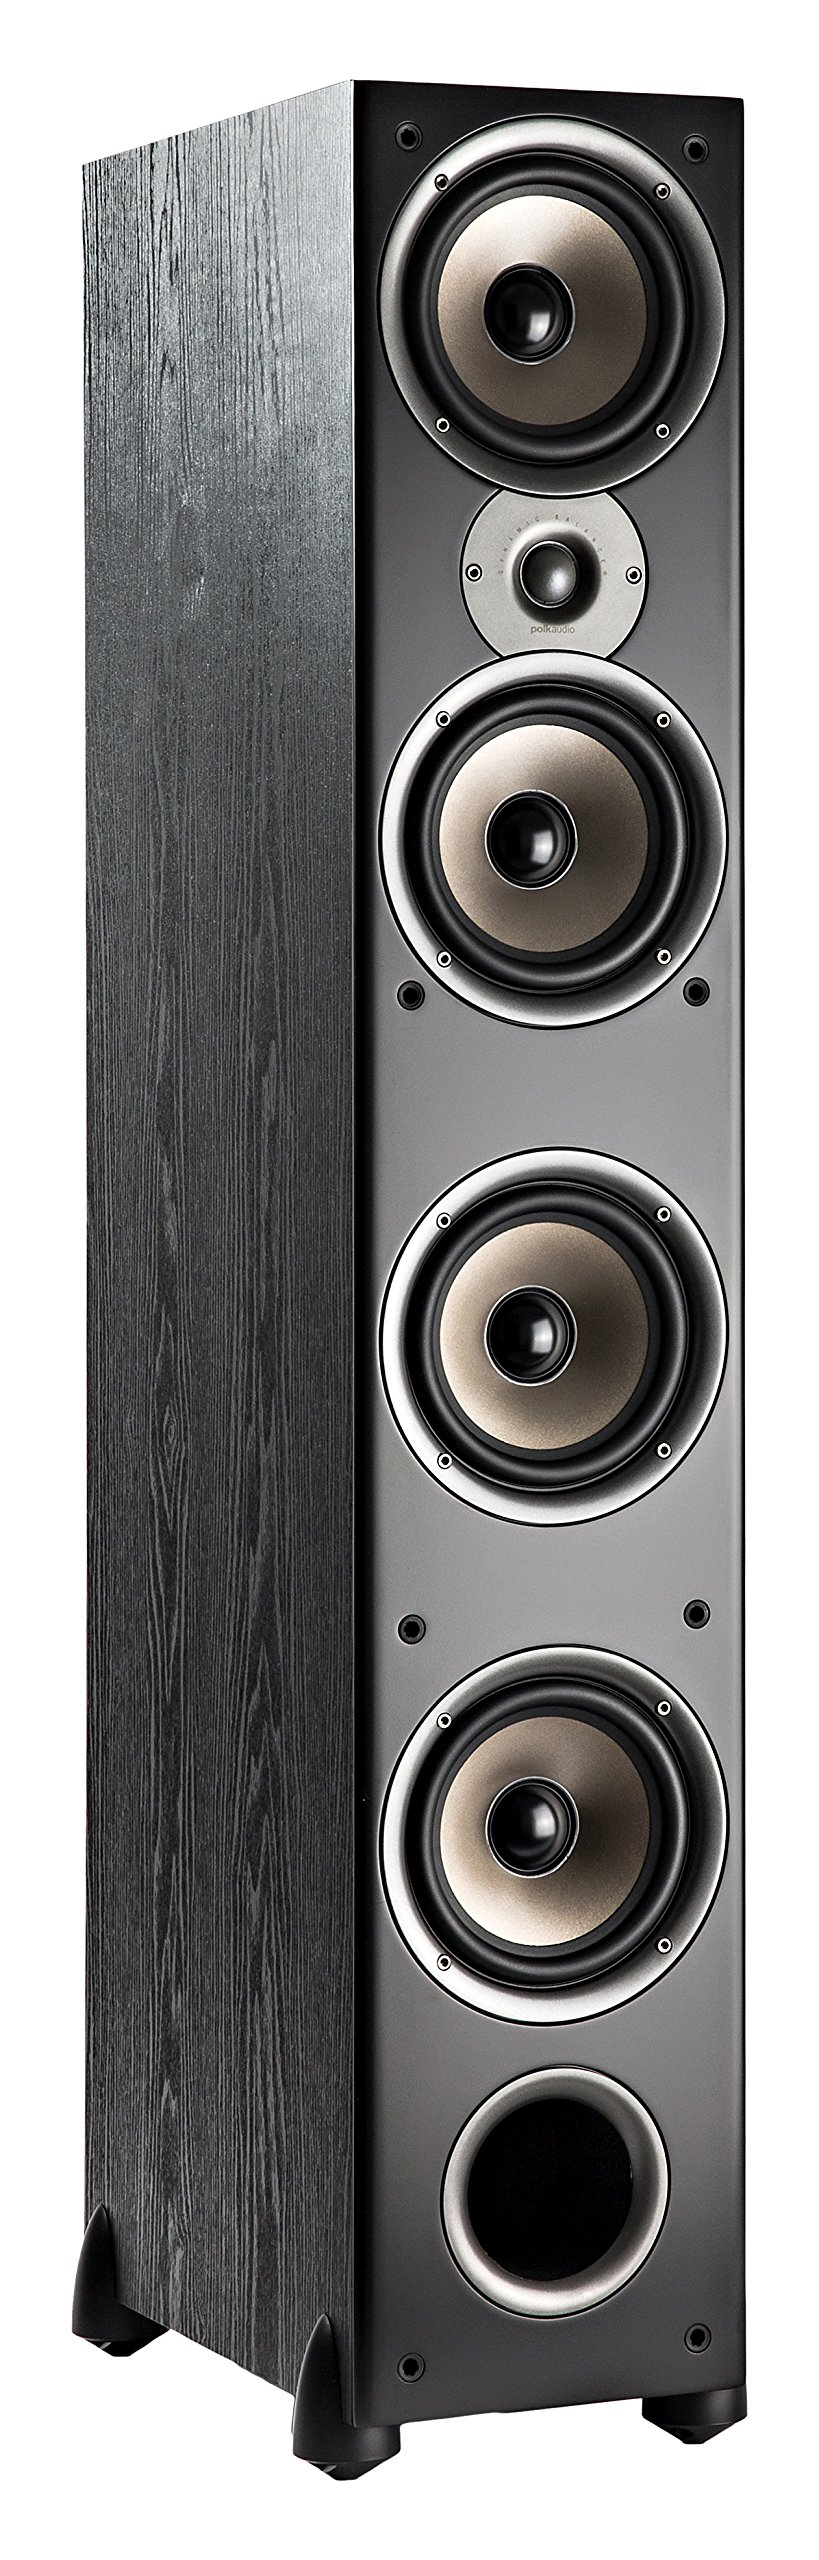 Polk Audio Monitor 70 Series II Floorstanding Speaker by Polk Audio